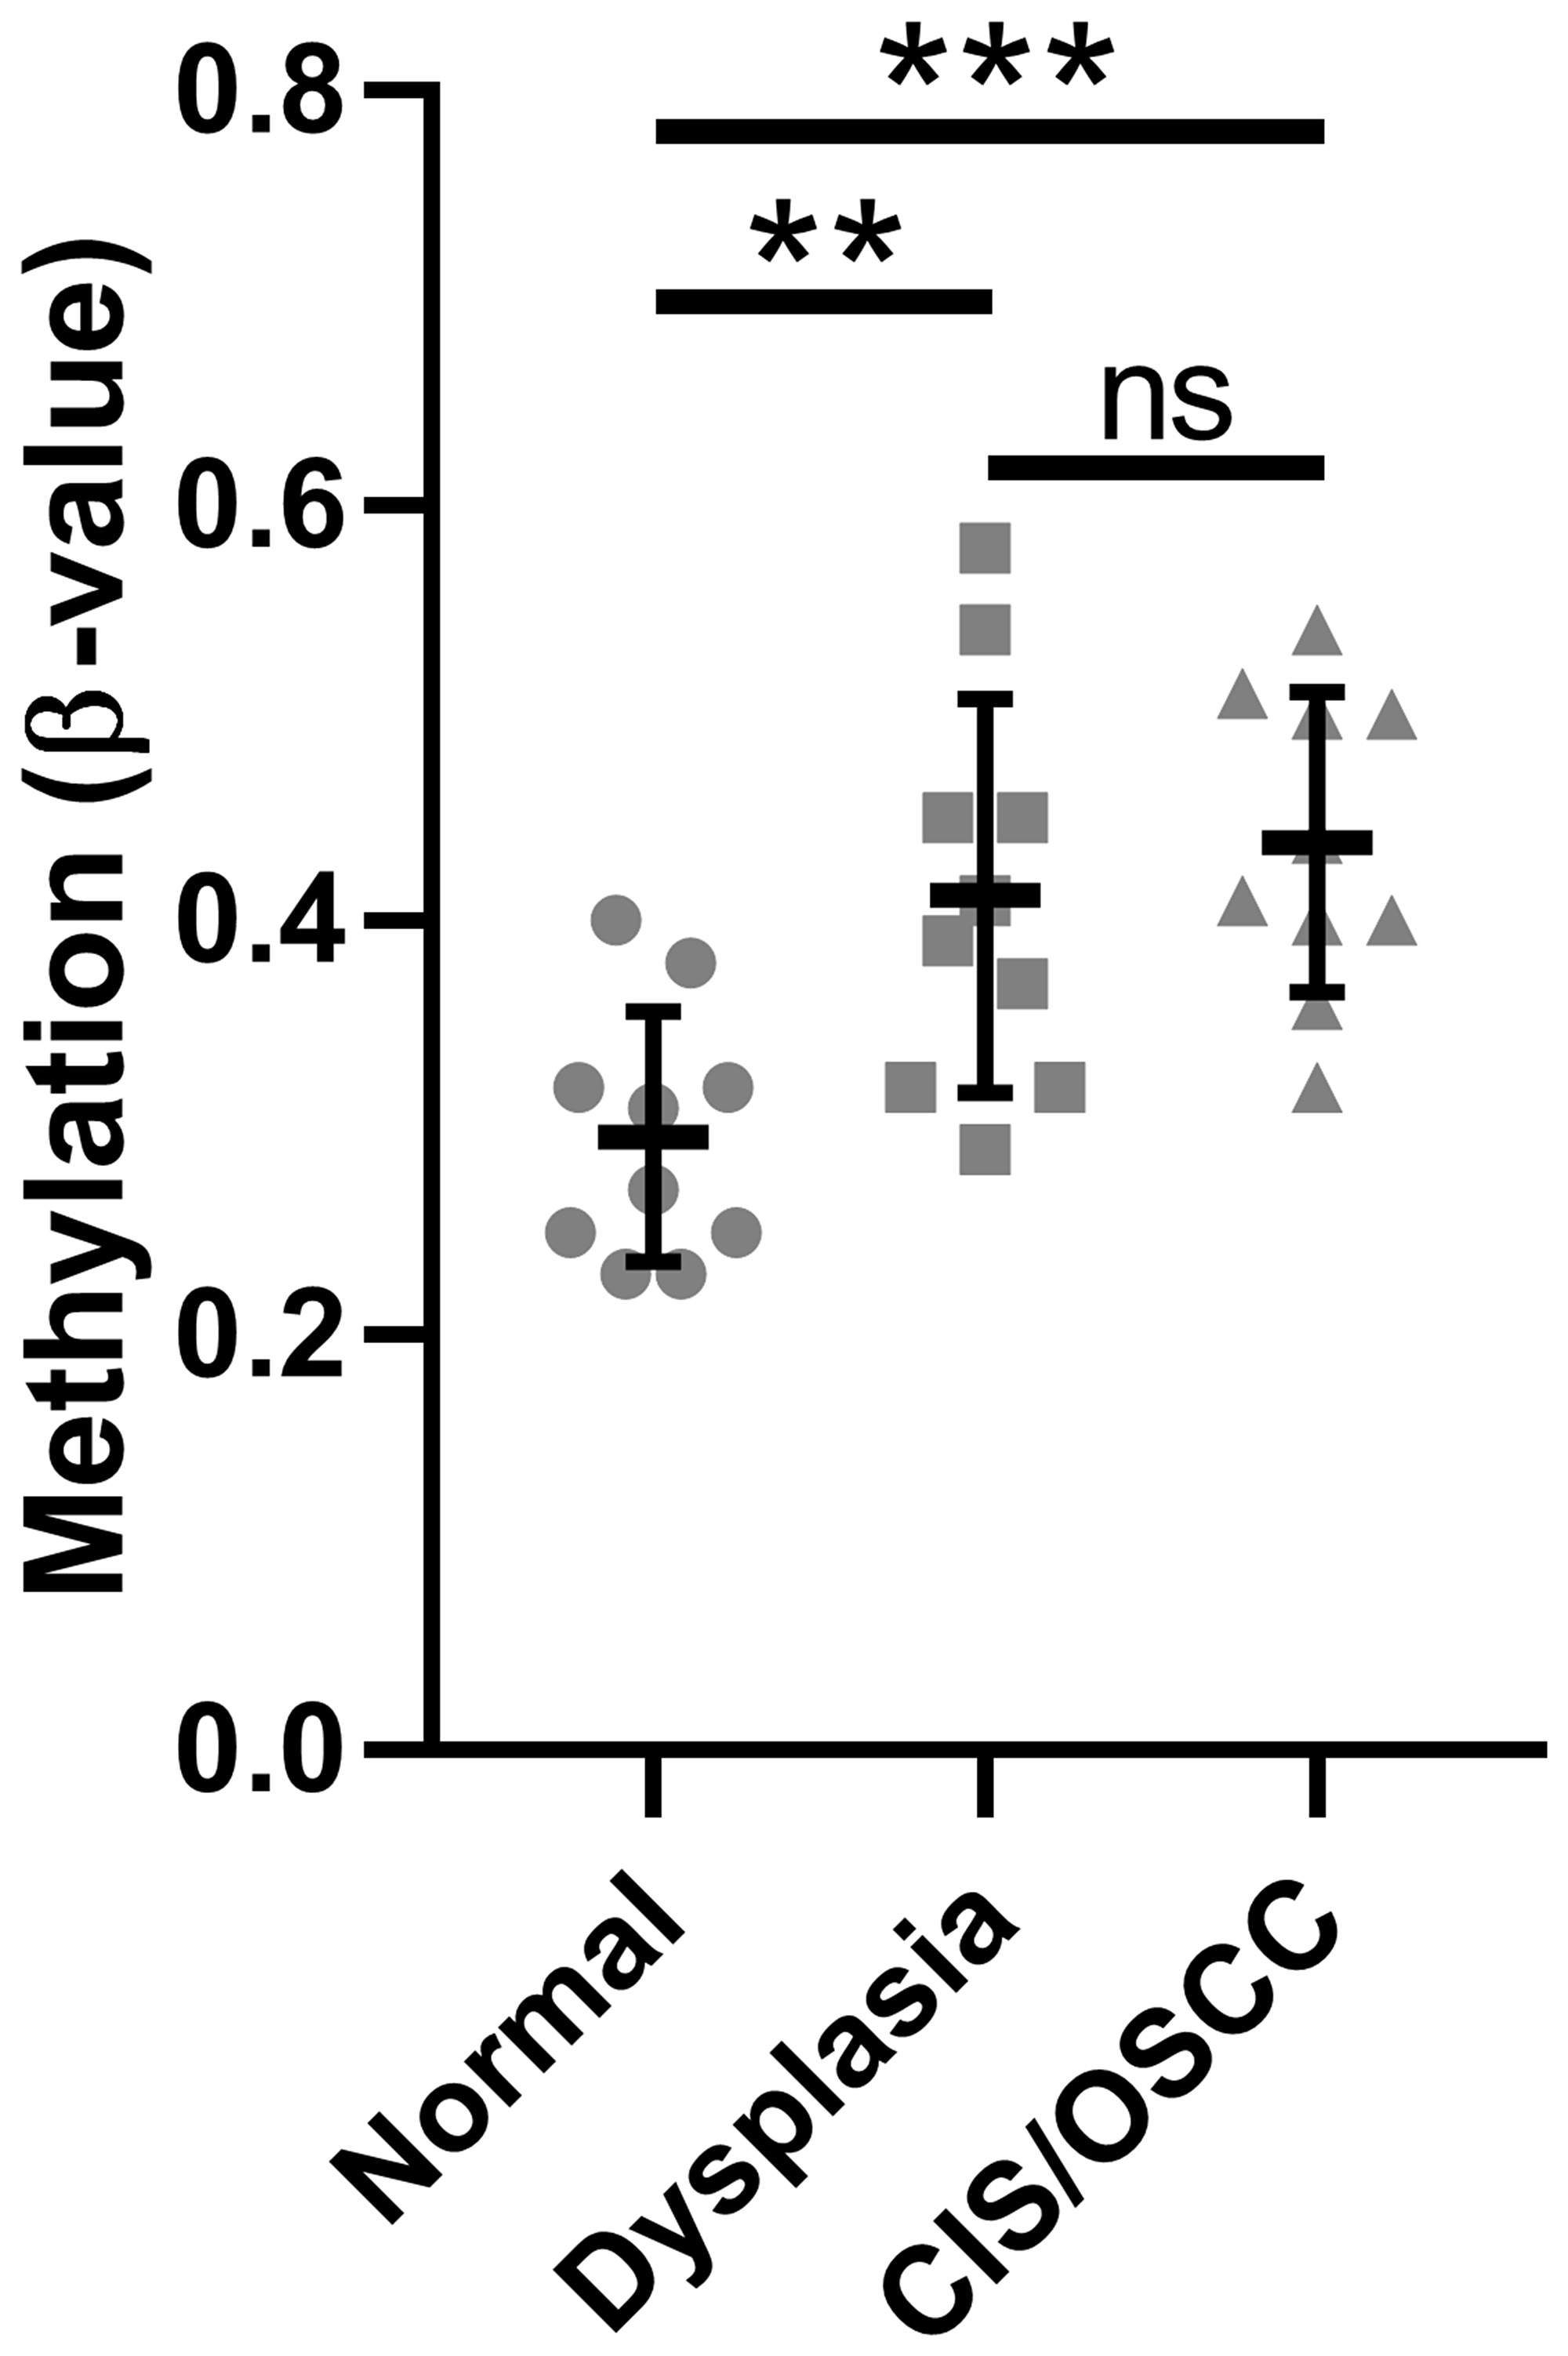 Methylation of the SMPD3 promoter CpG island is increased in oral dysplasia and cancer tissues compared with normal tissues.